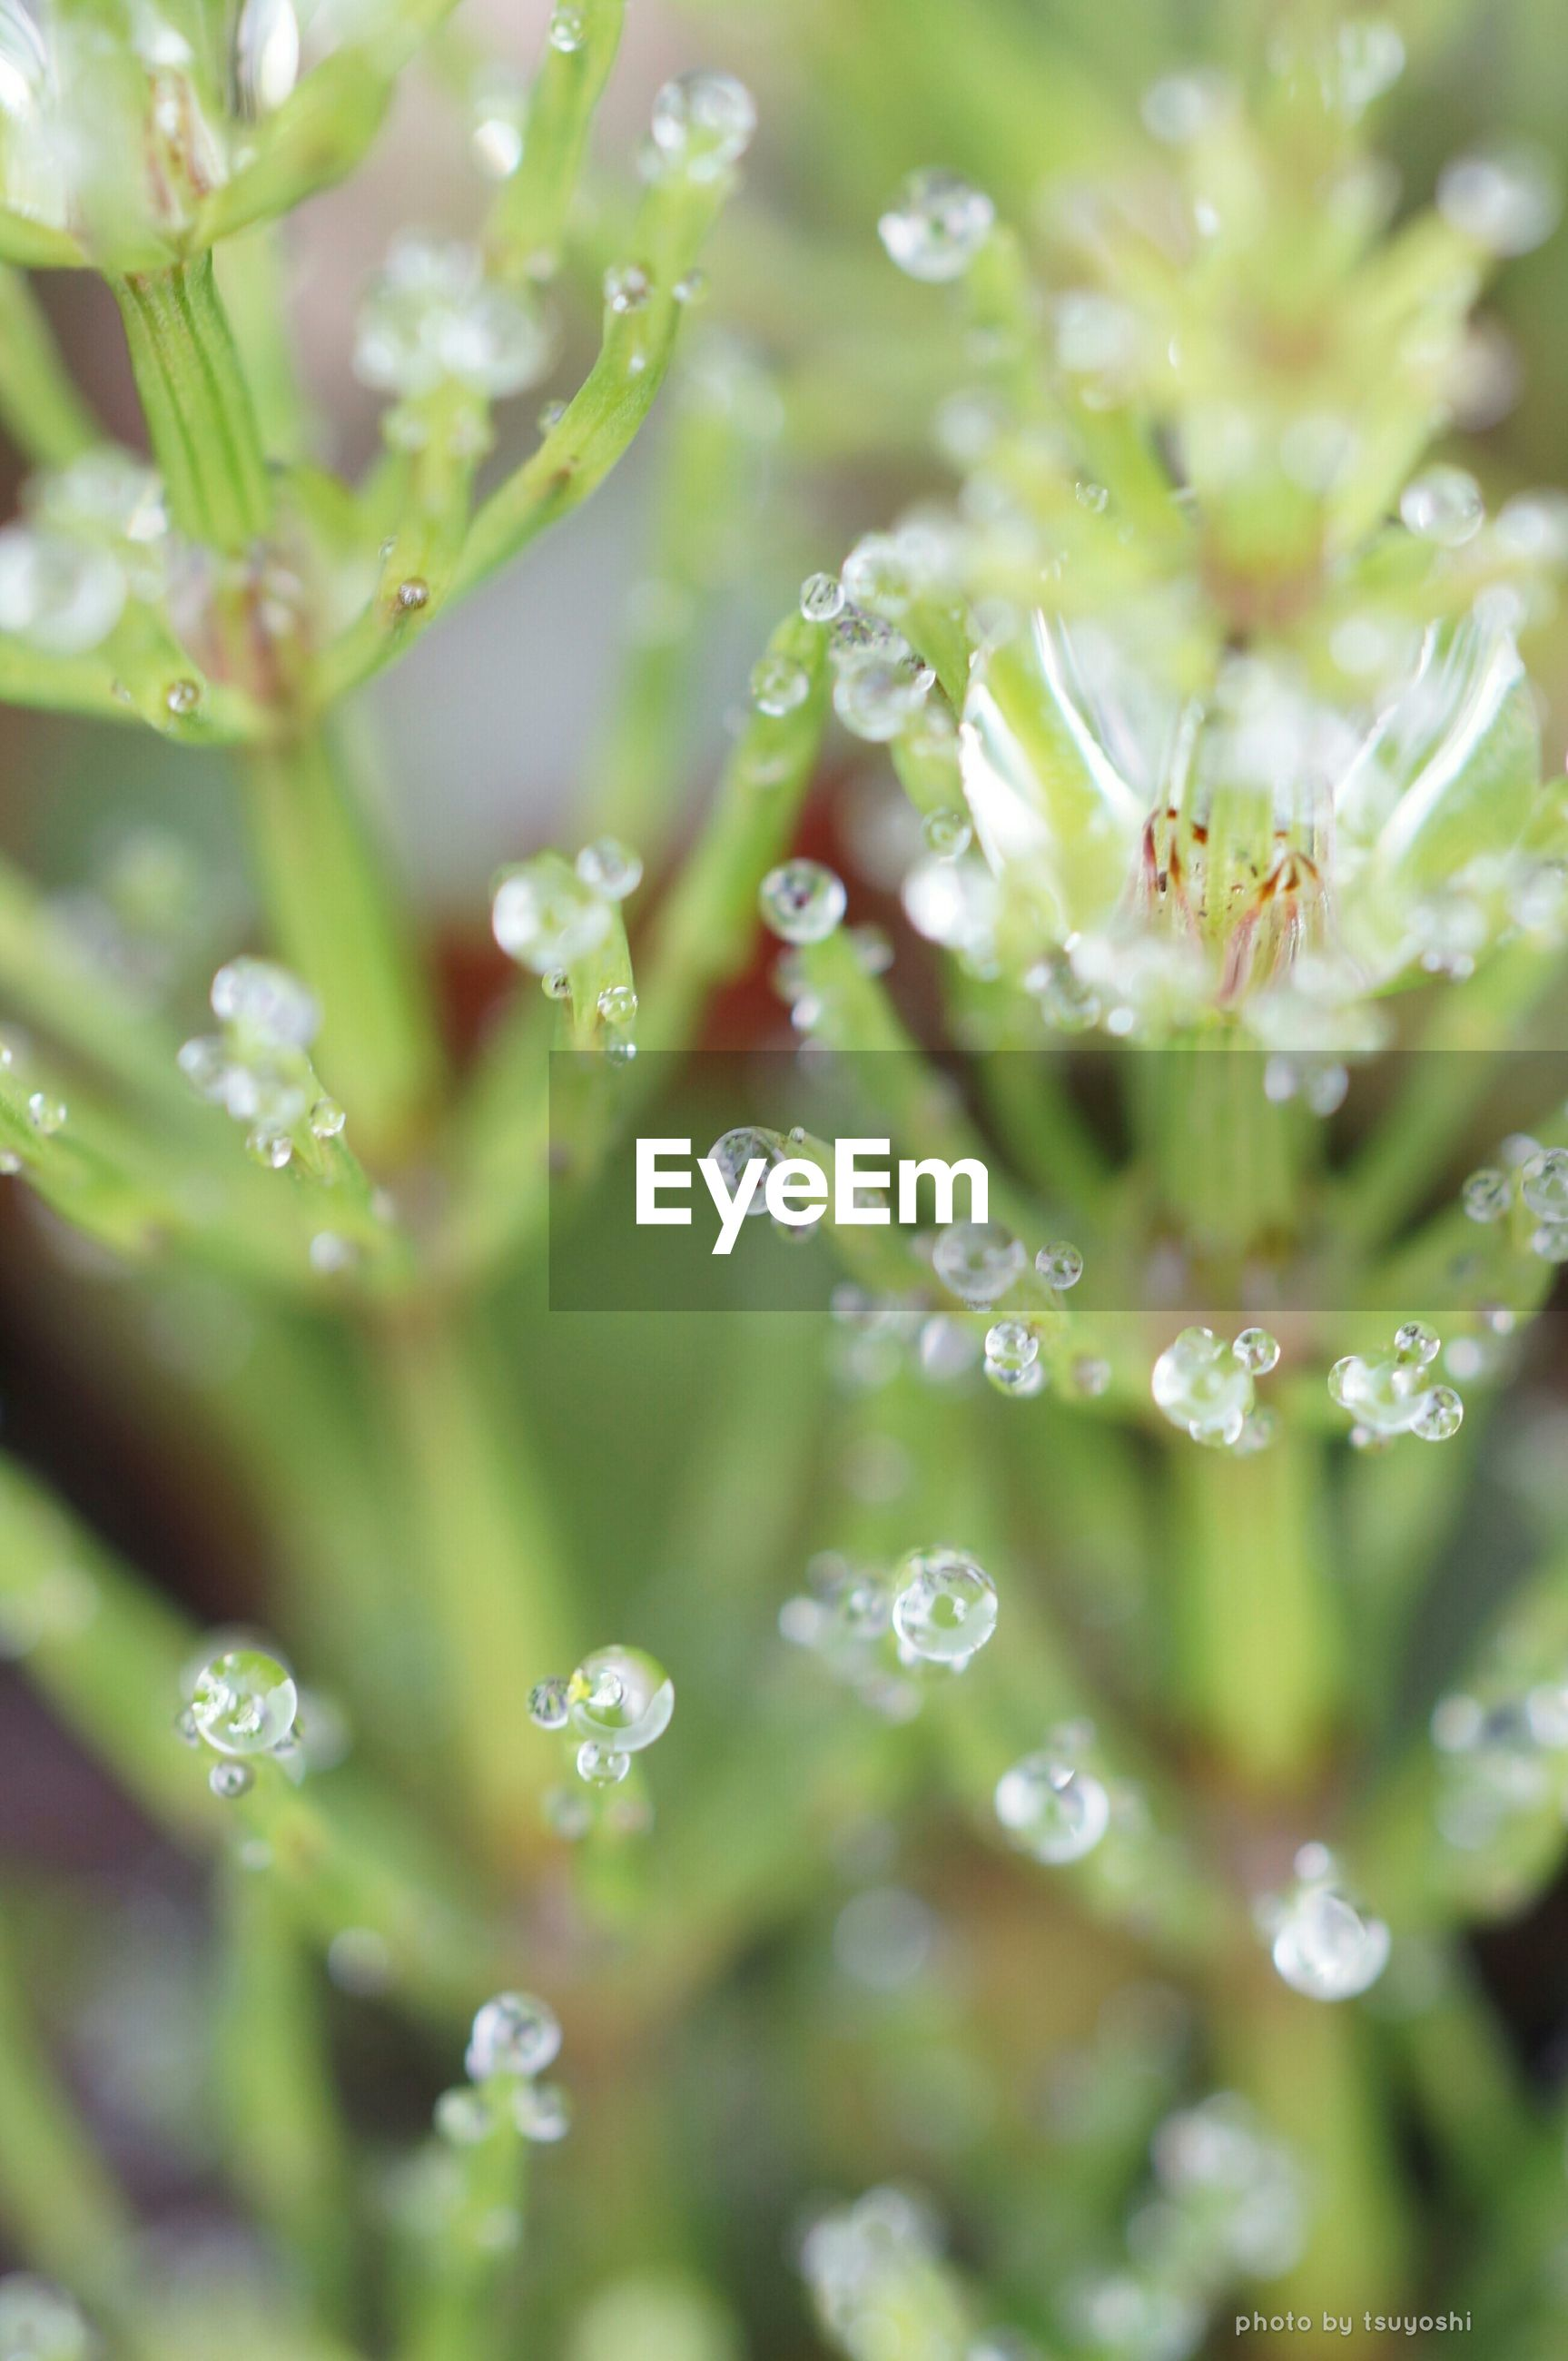 drop, freshness, water, growth, fragility, close-up, wet, beauty in nature, nature, flower, plant, focus on foreground, dew, selective focus, green color, leaf, purity, raindrop, day, droplet